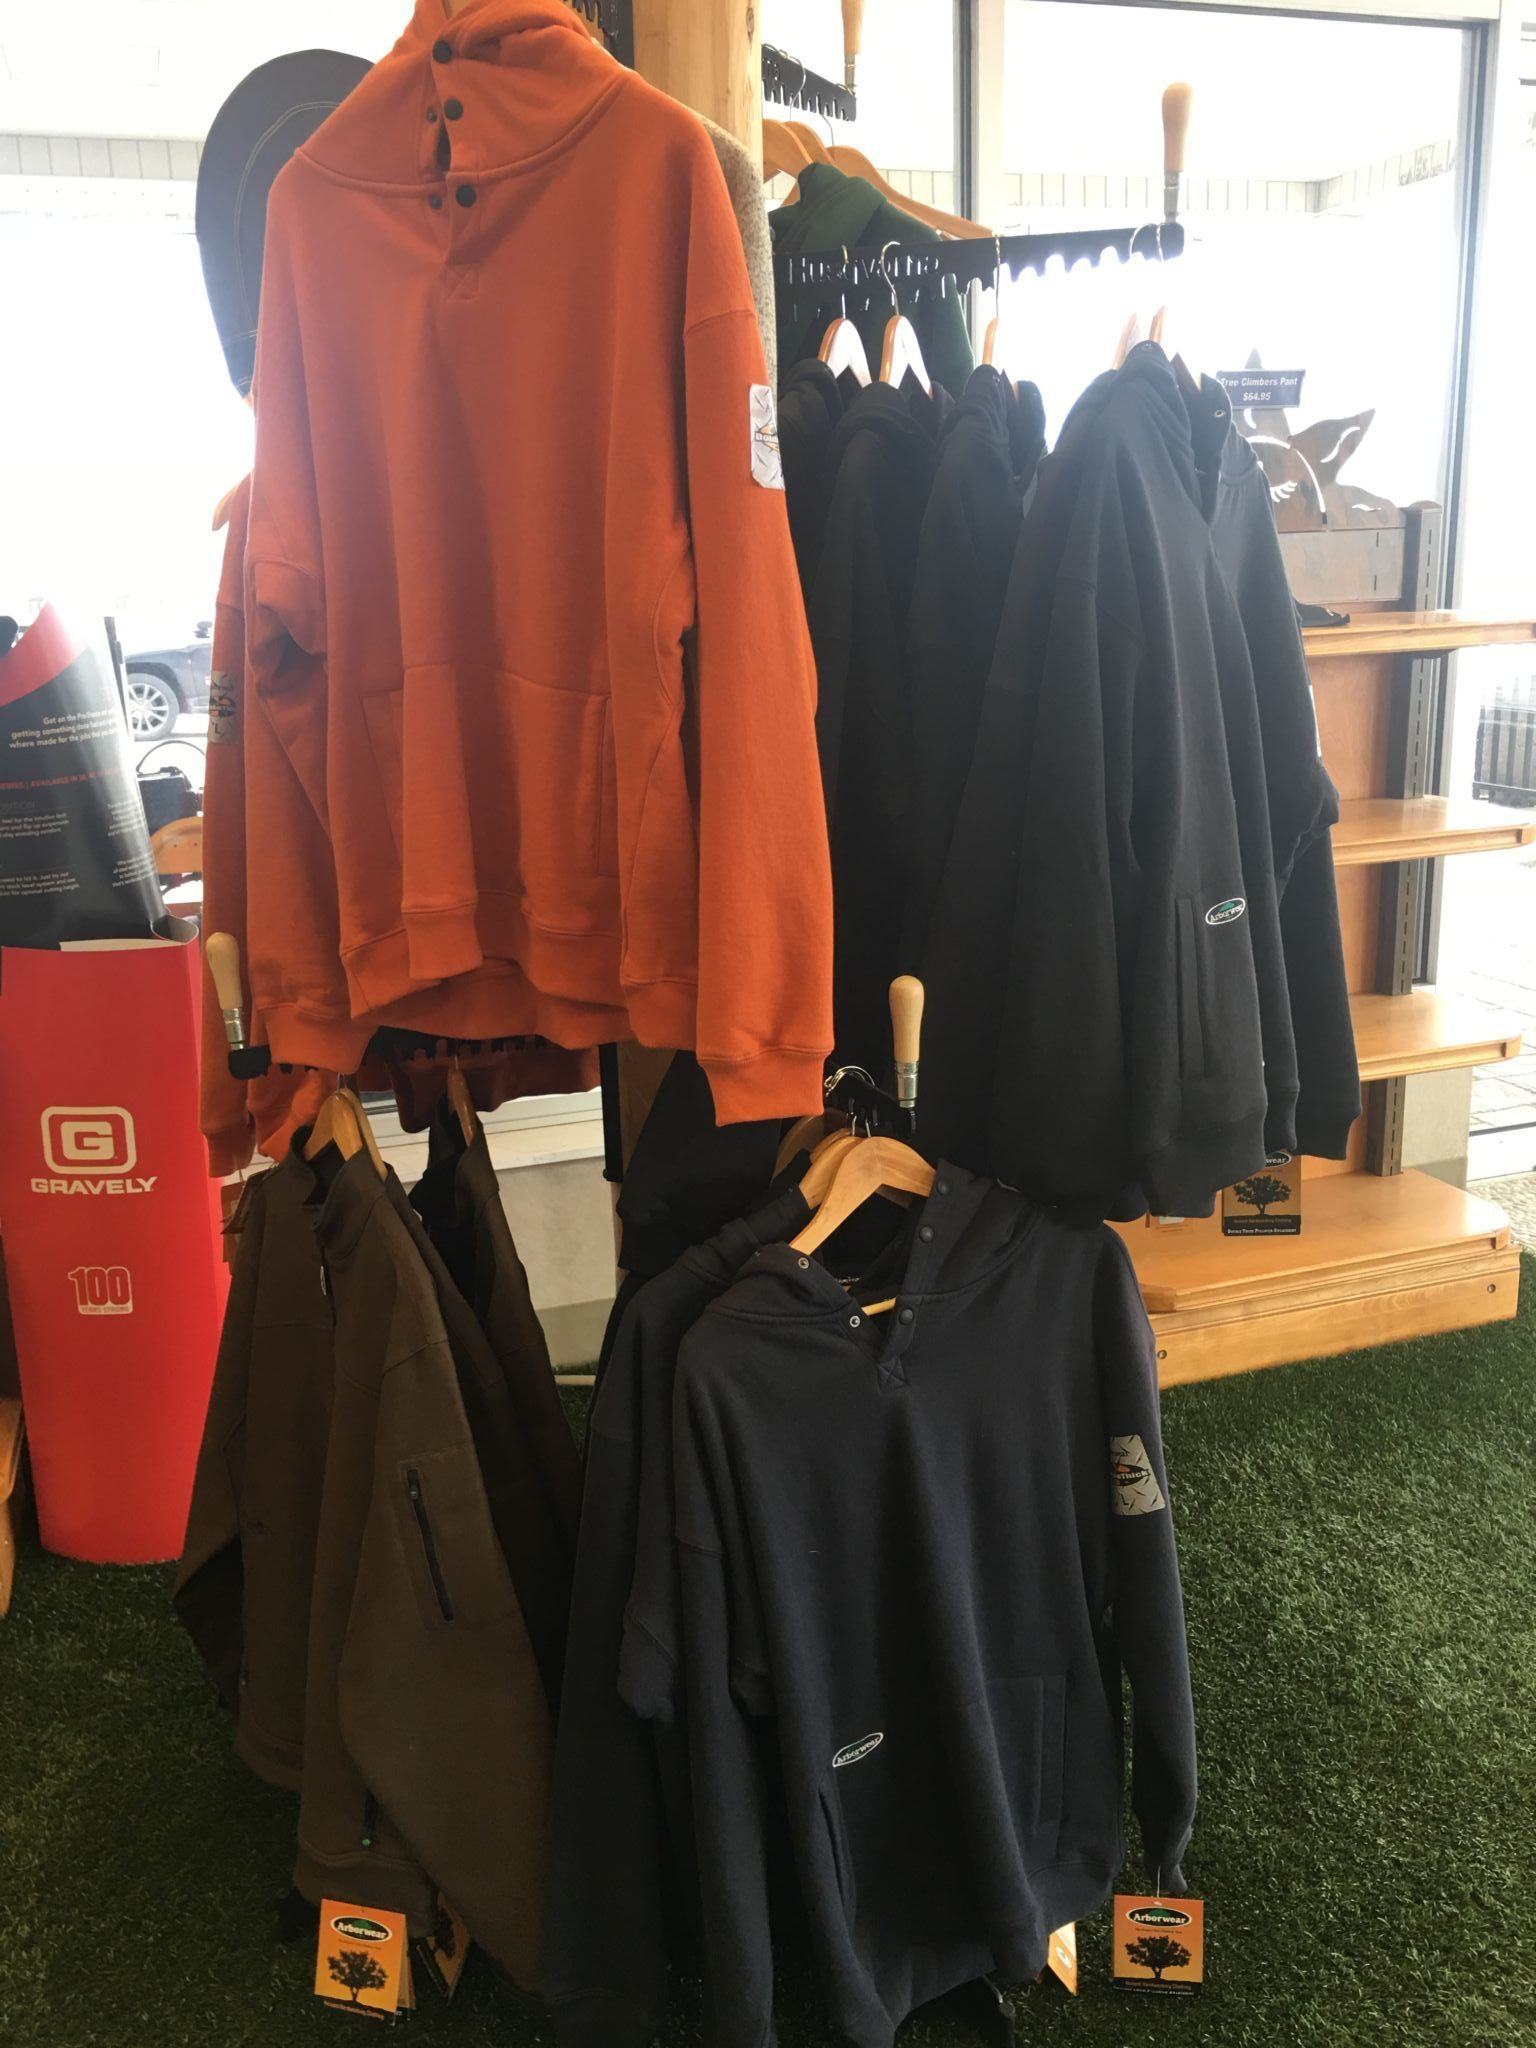 New ArborWear and Georgia gear